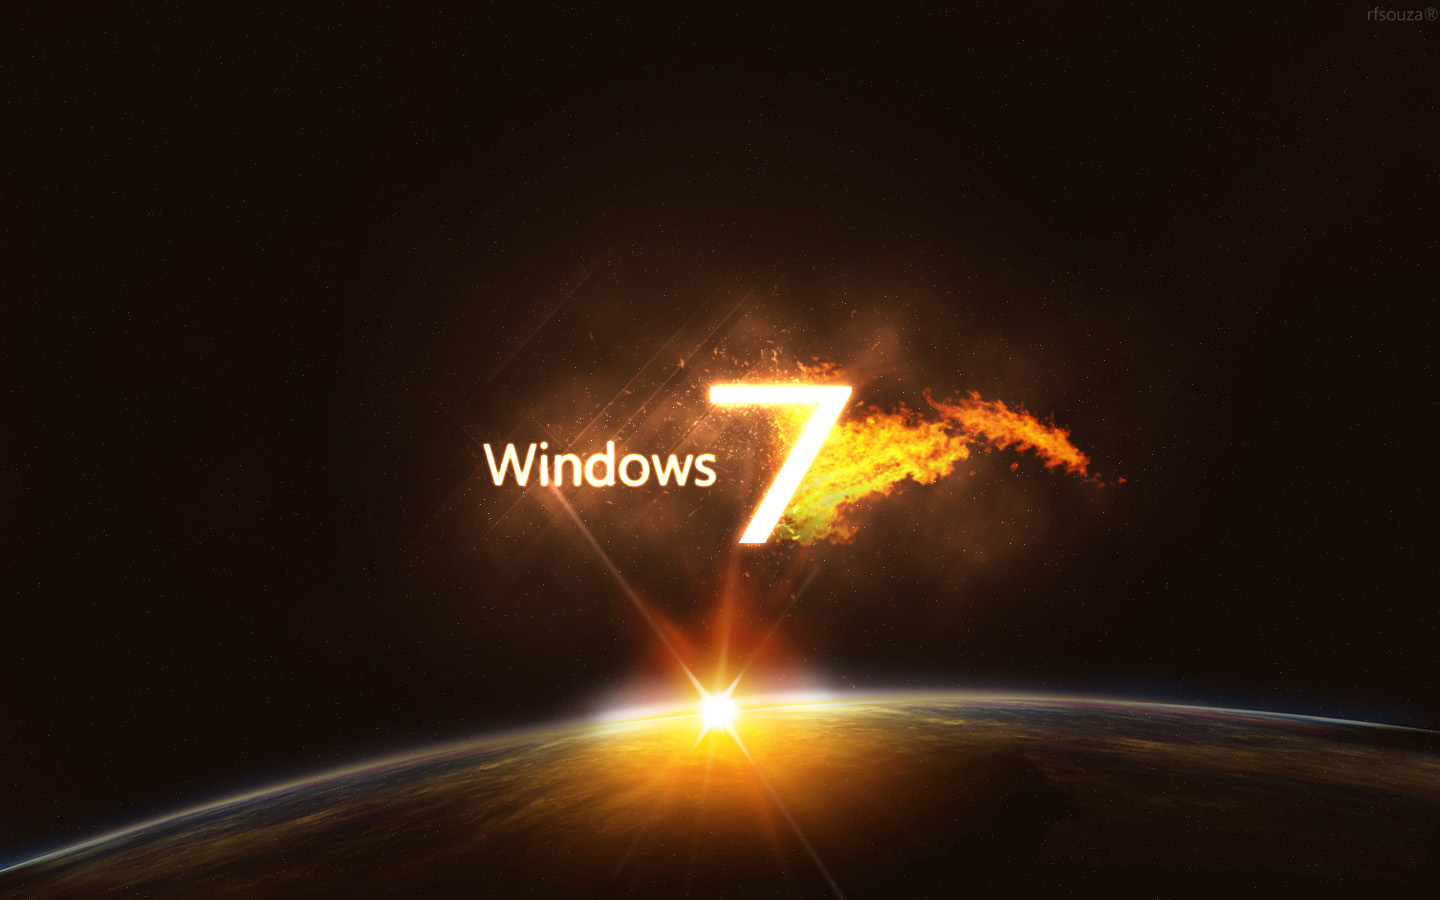 Wallpaper Windows 7 3D For Desktop 1440x900